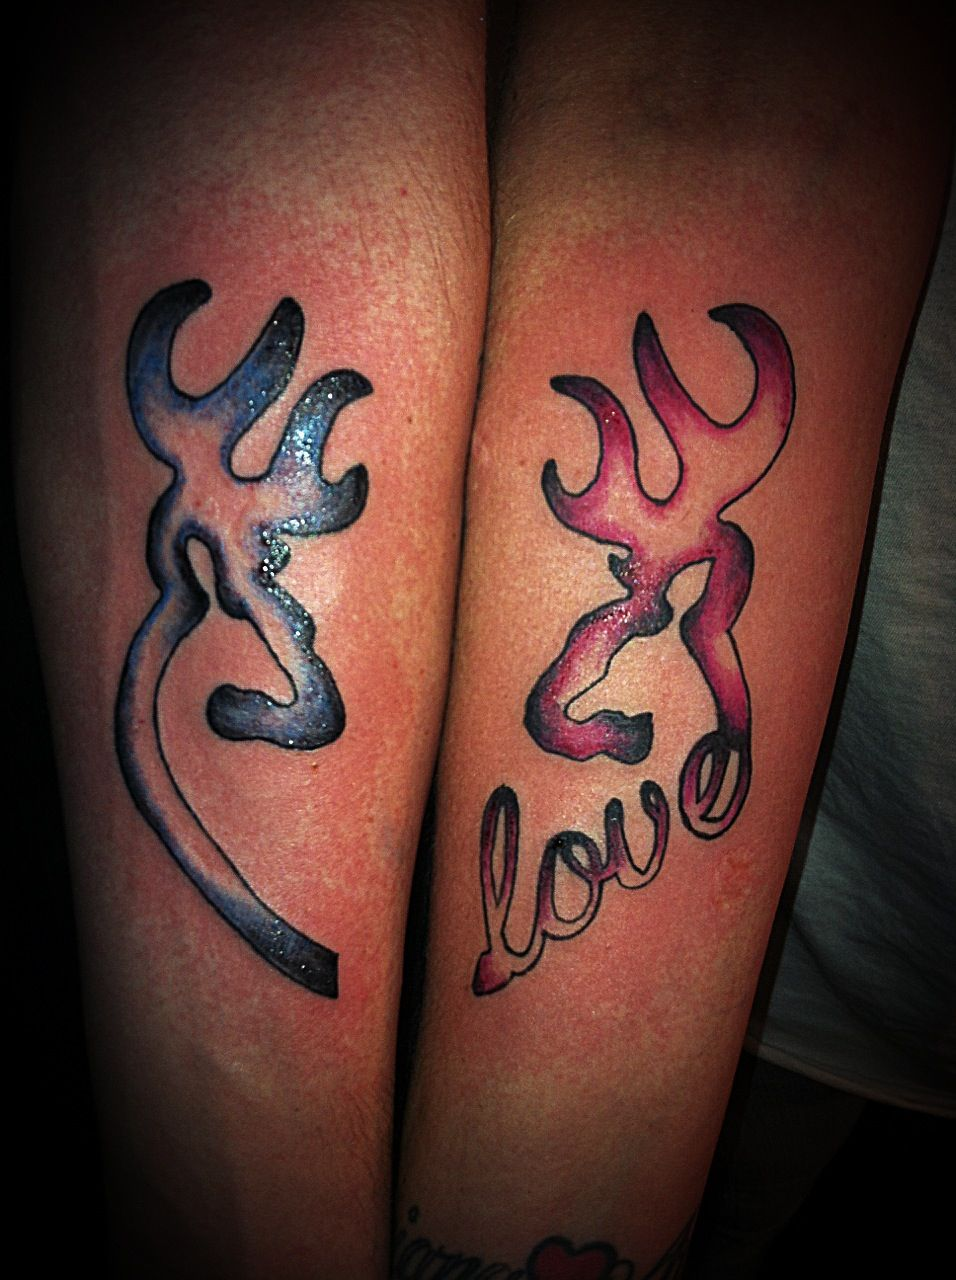 25 Couple Tattoos Ideas Gallery Tatto, Browning and Tattoo